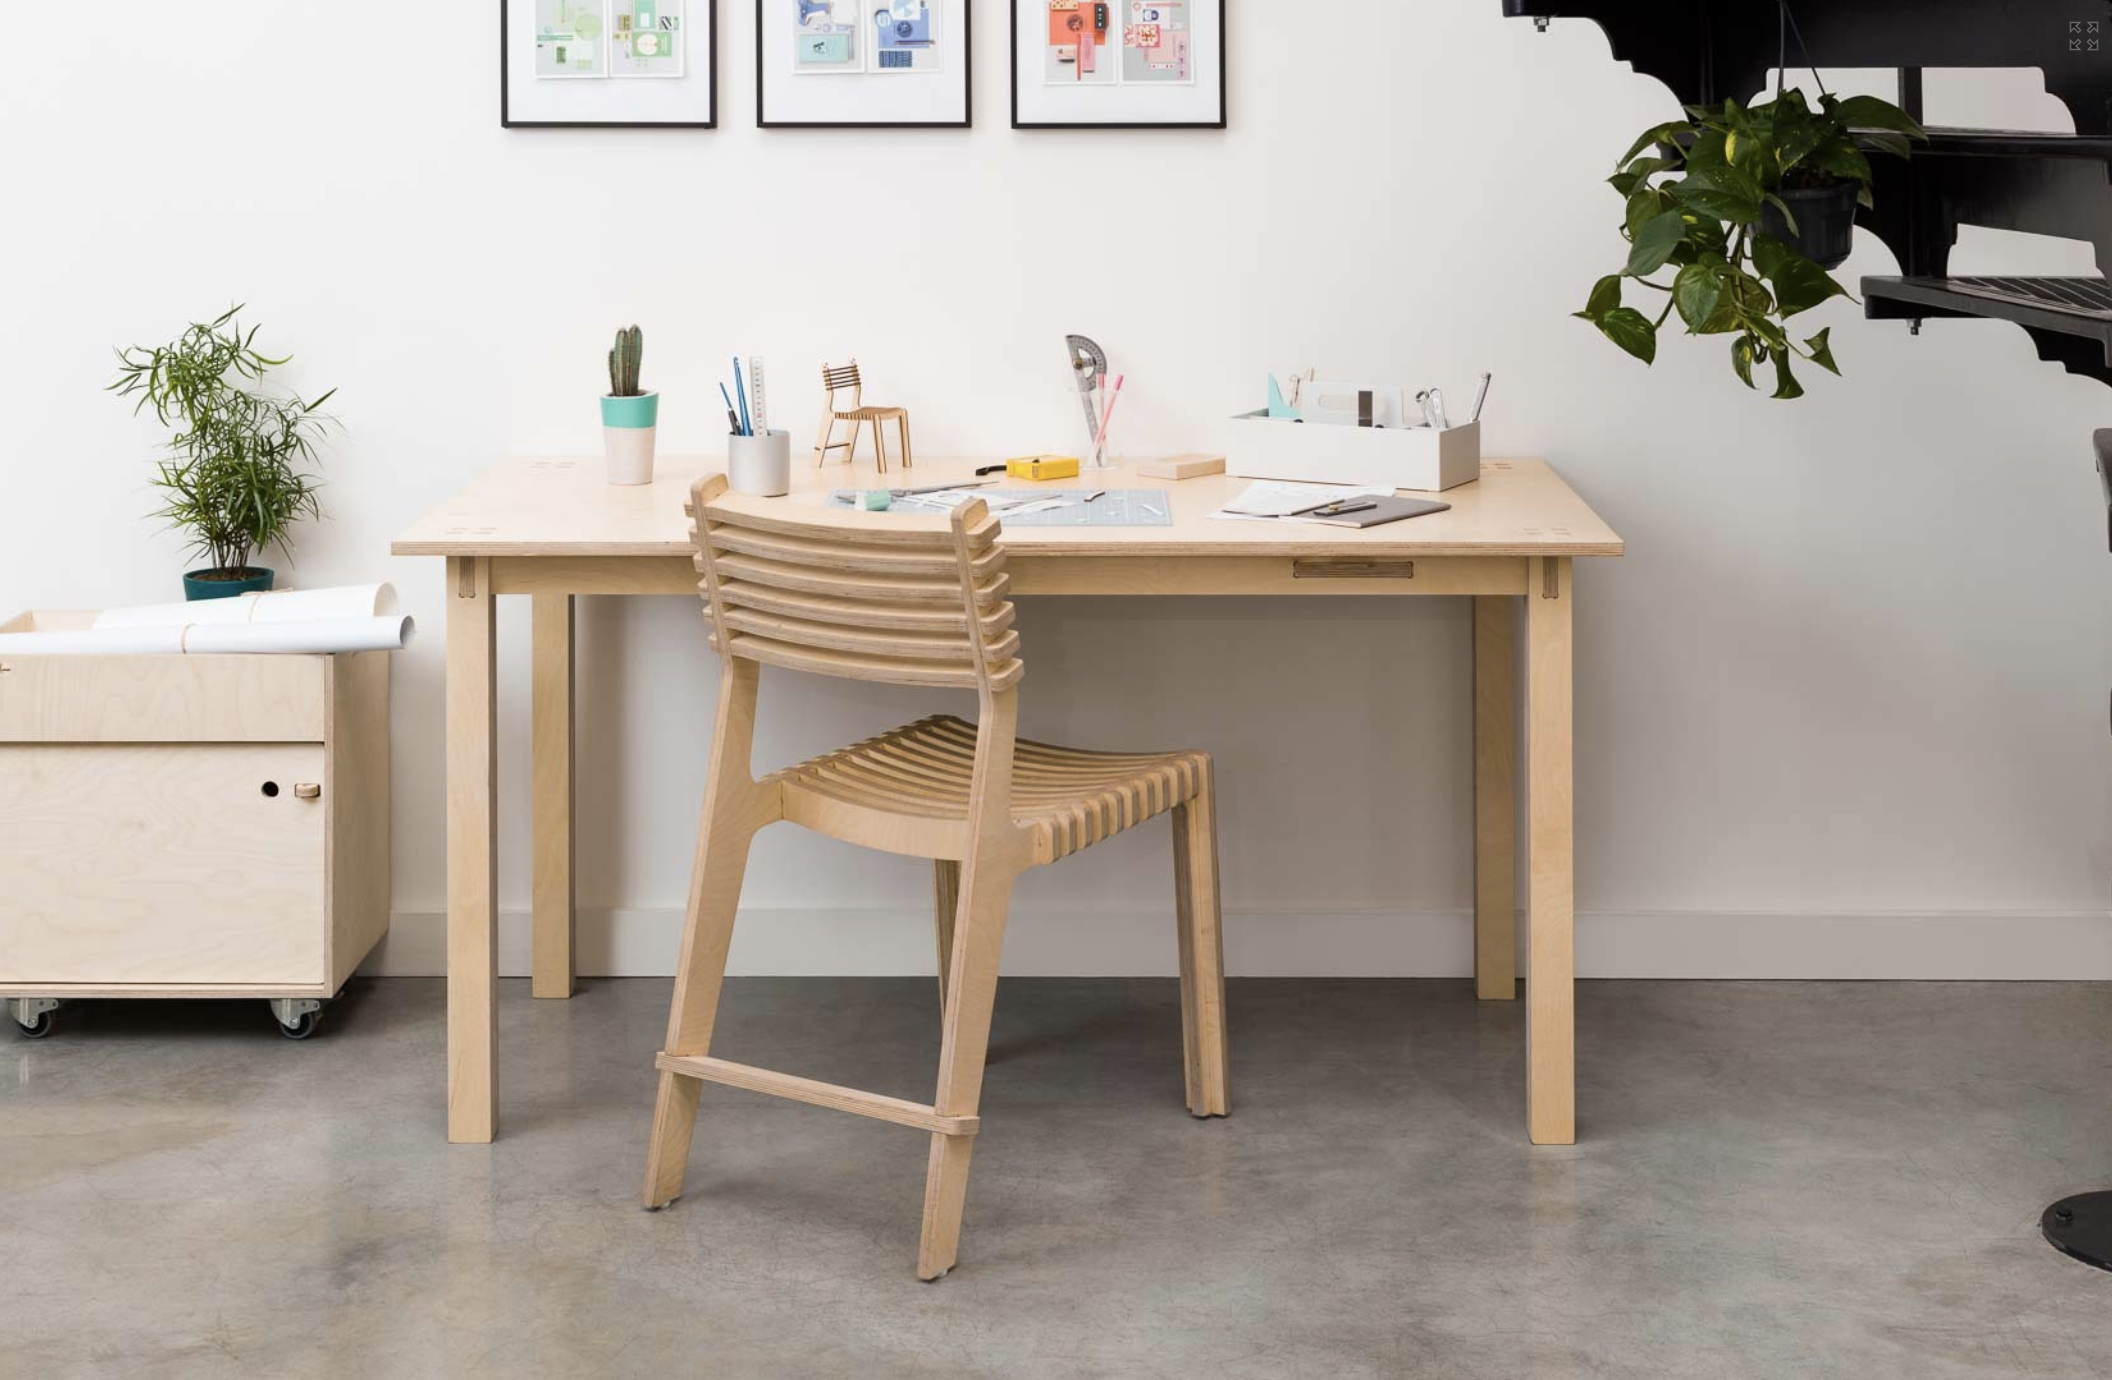 The Valoví Chair is a charming multi-functional side chair, designed with a curved seat and back for greater comfort. €360 – €490 for 2.